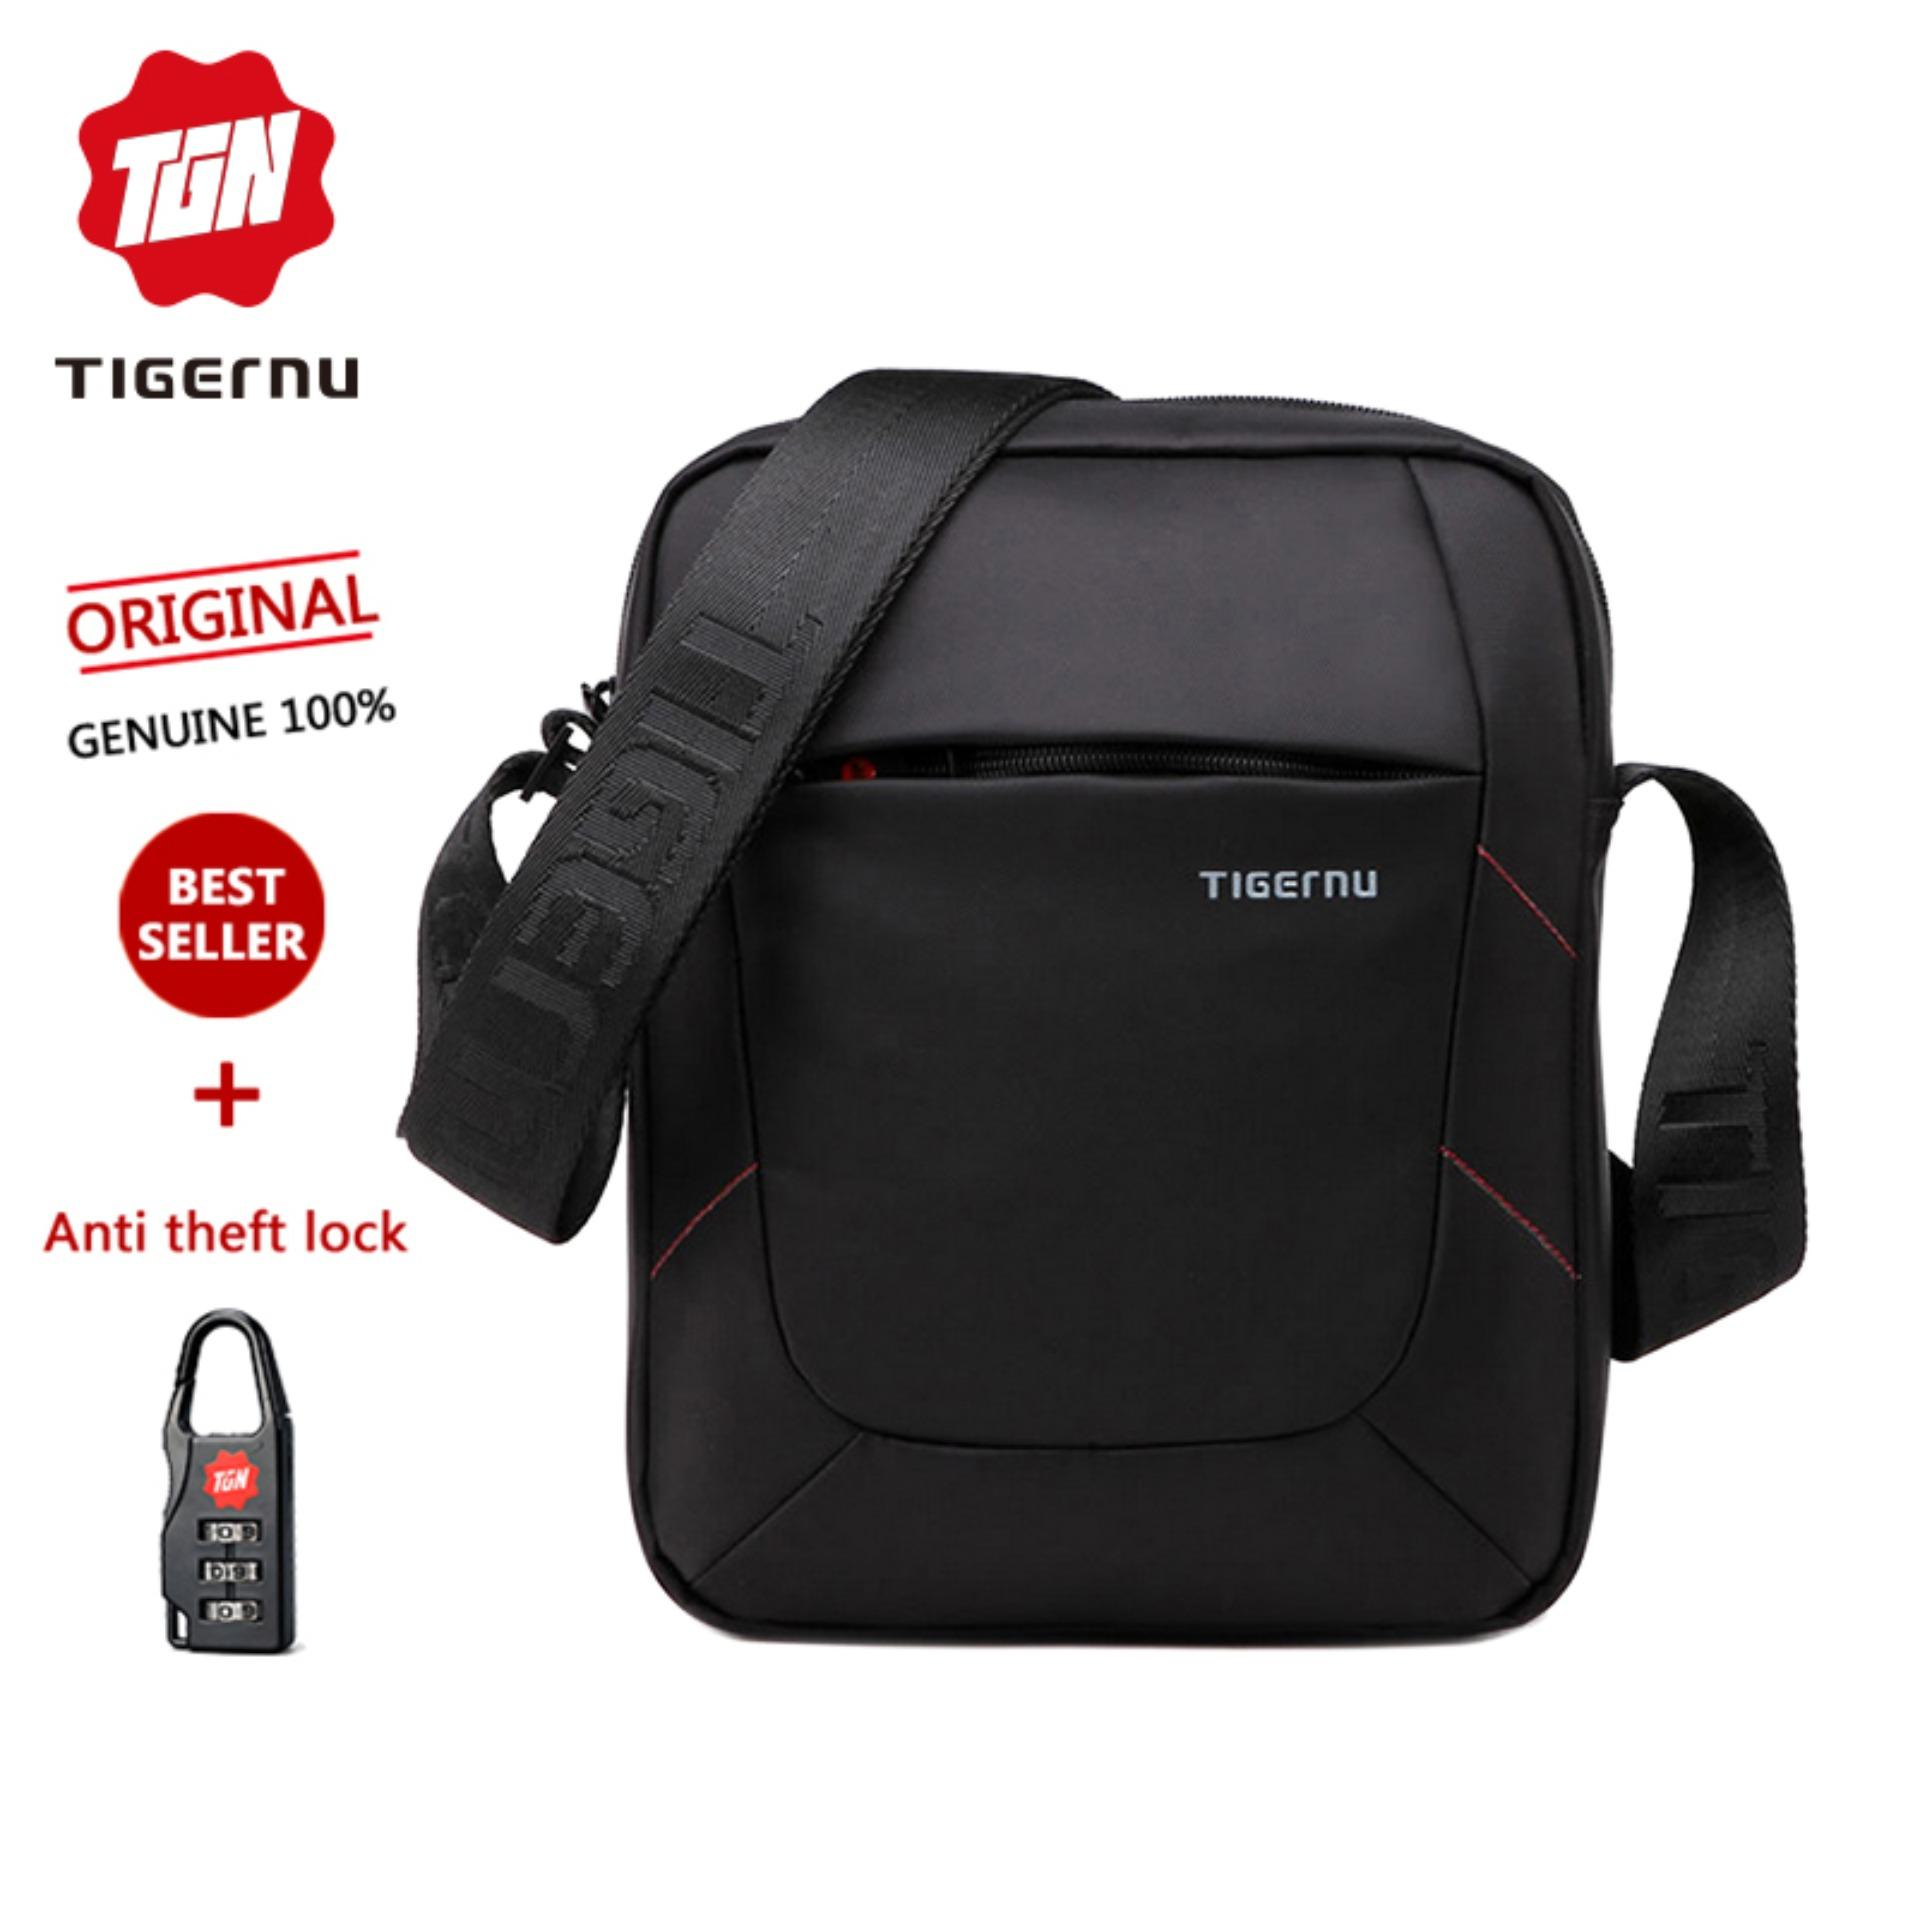 Tigernu Brand Hottest Sale Water-Resistant Scratch Proof Casual Messager Travel Men Business Shoulder Sling Bag For Men Fashion Bag For Phone&wallet 5108(black) By Tigernu Brand Official Store.